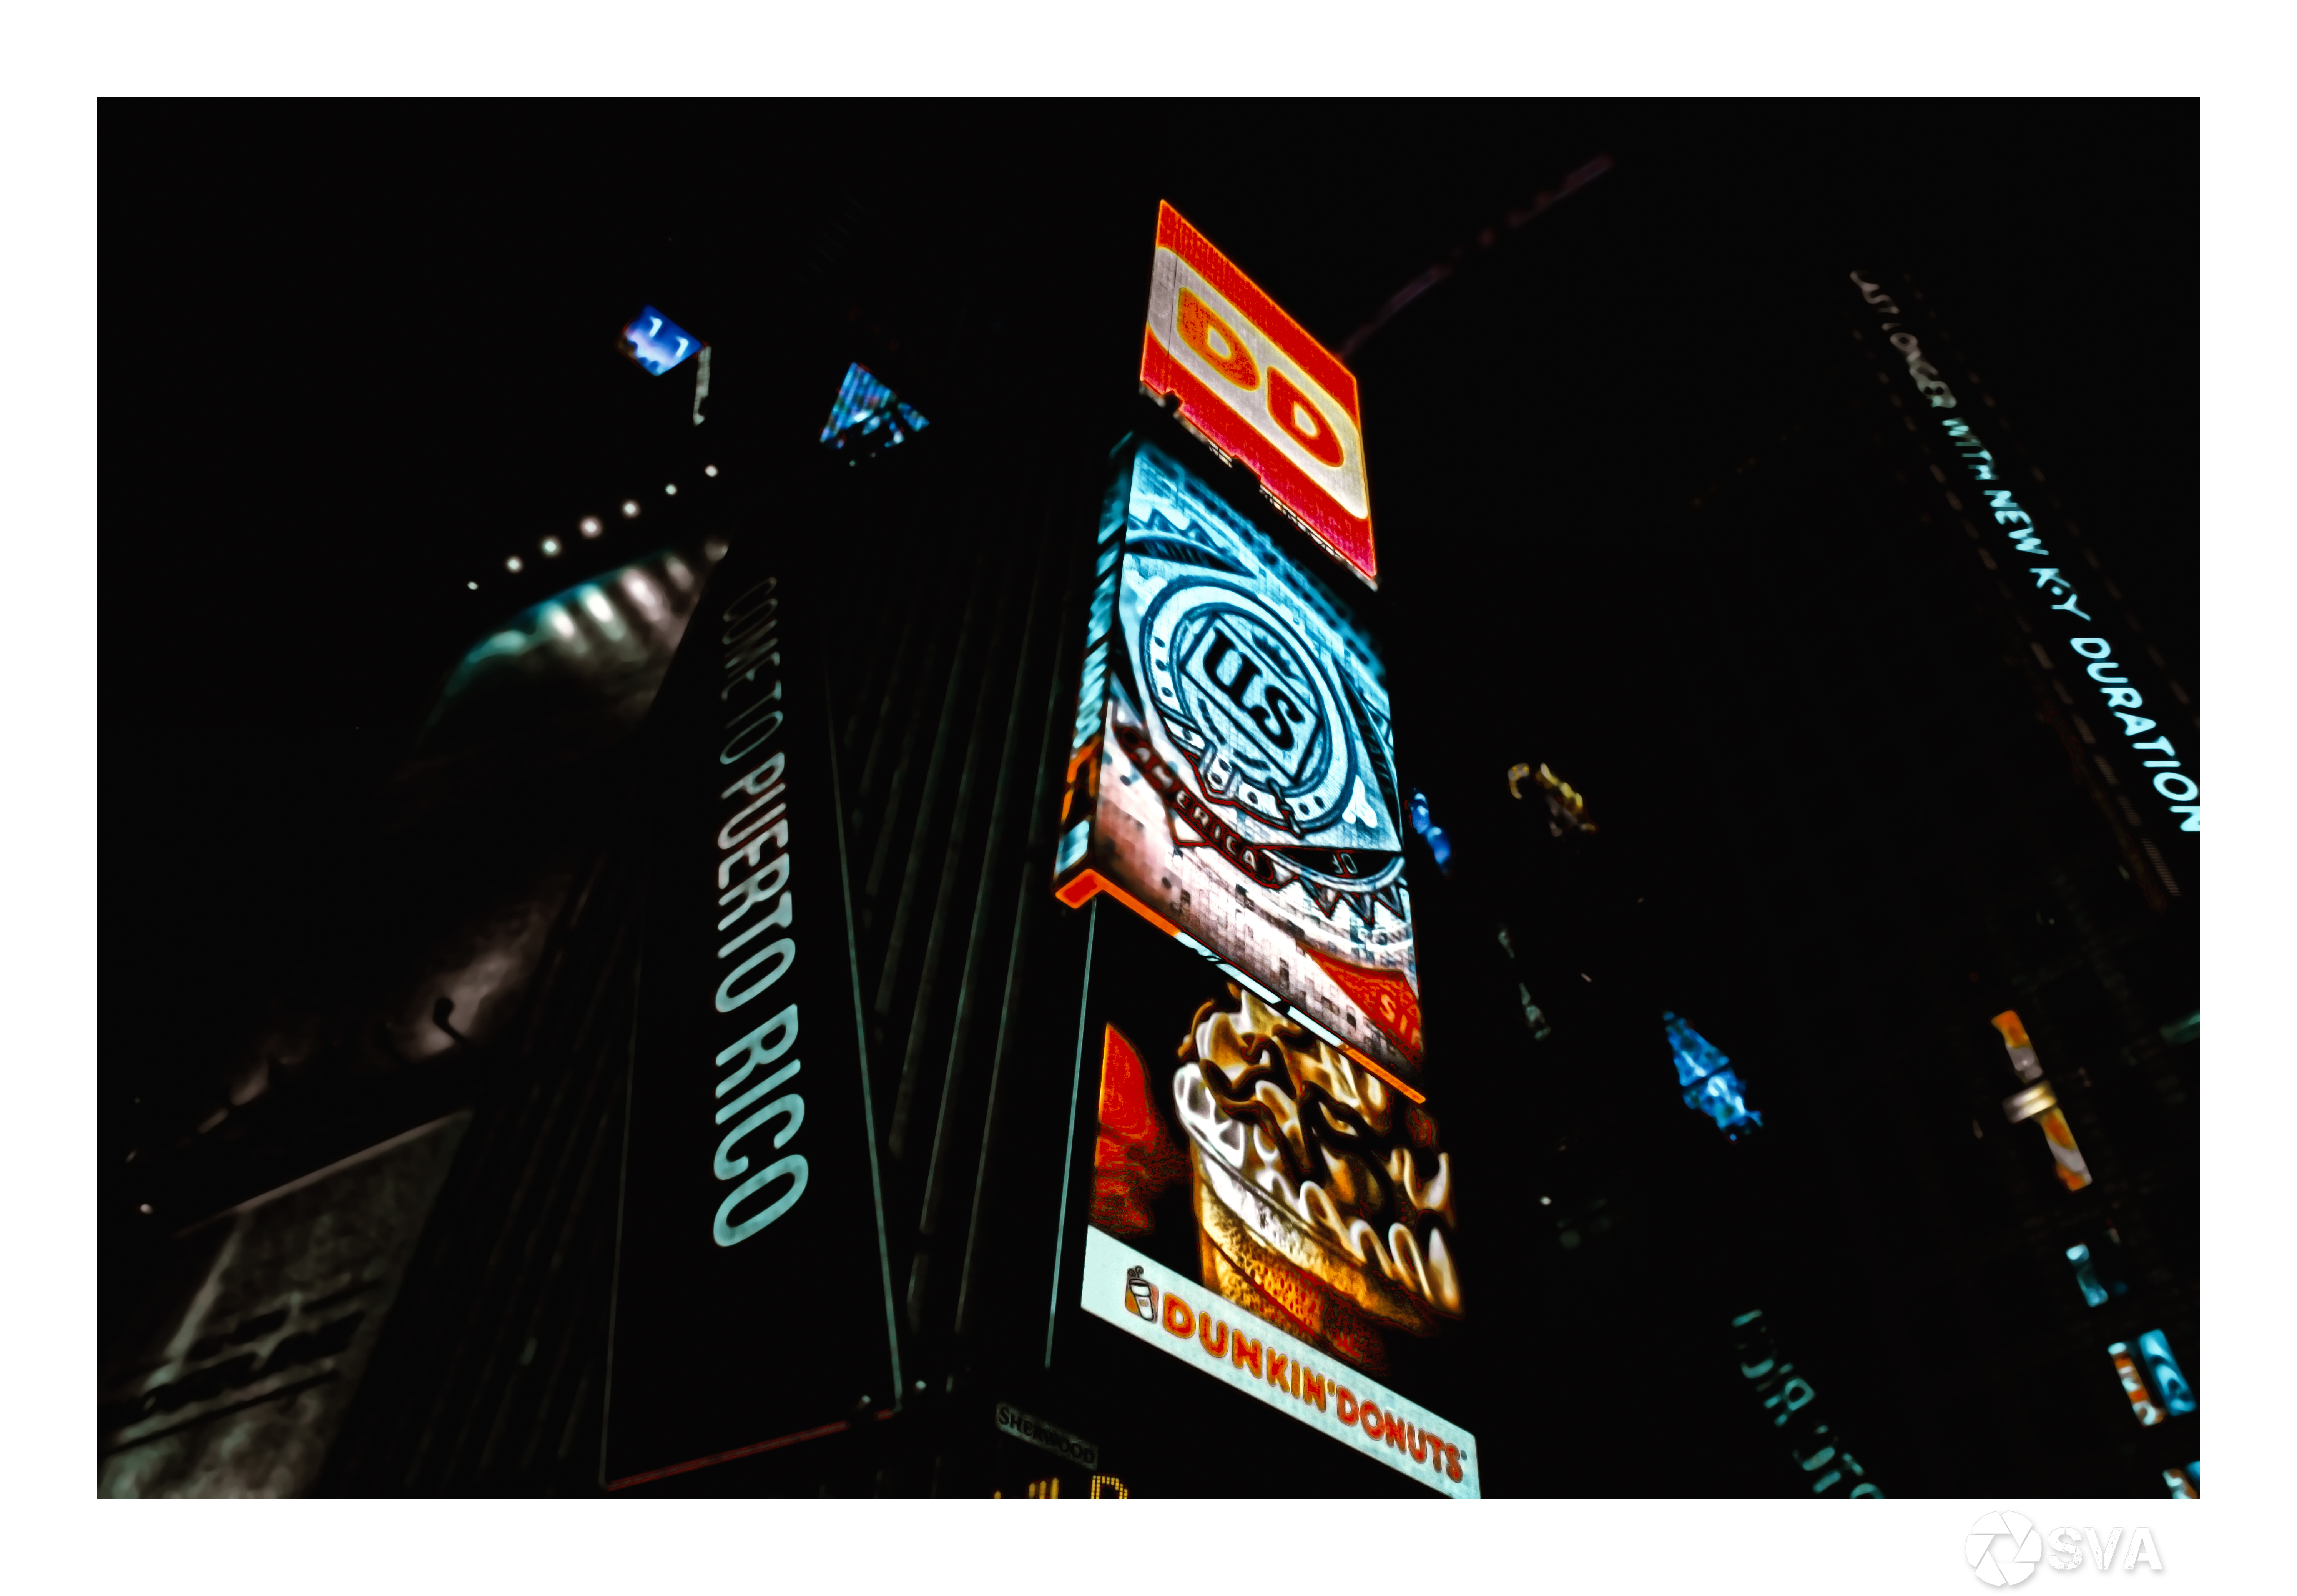 WDILNY_Day 2_Time Square by night